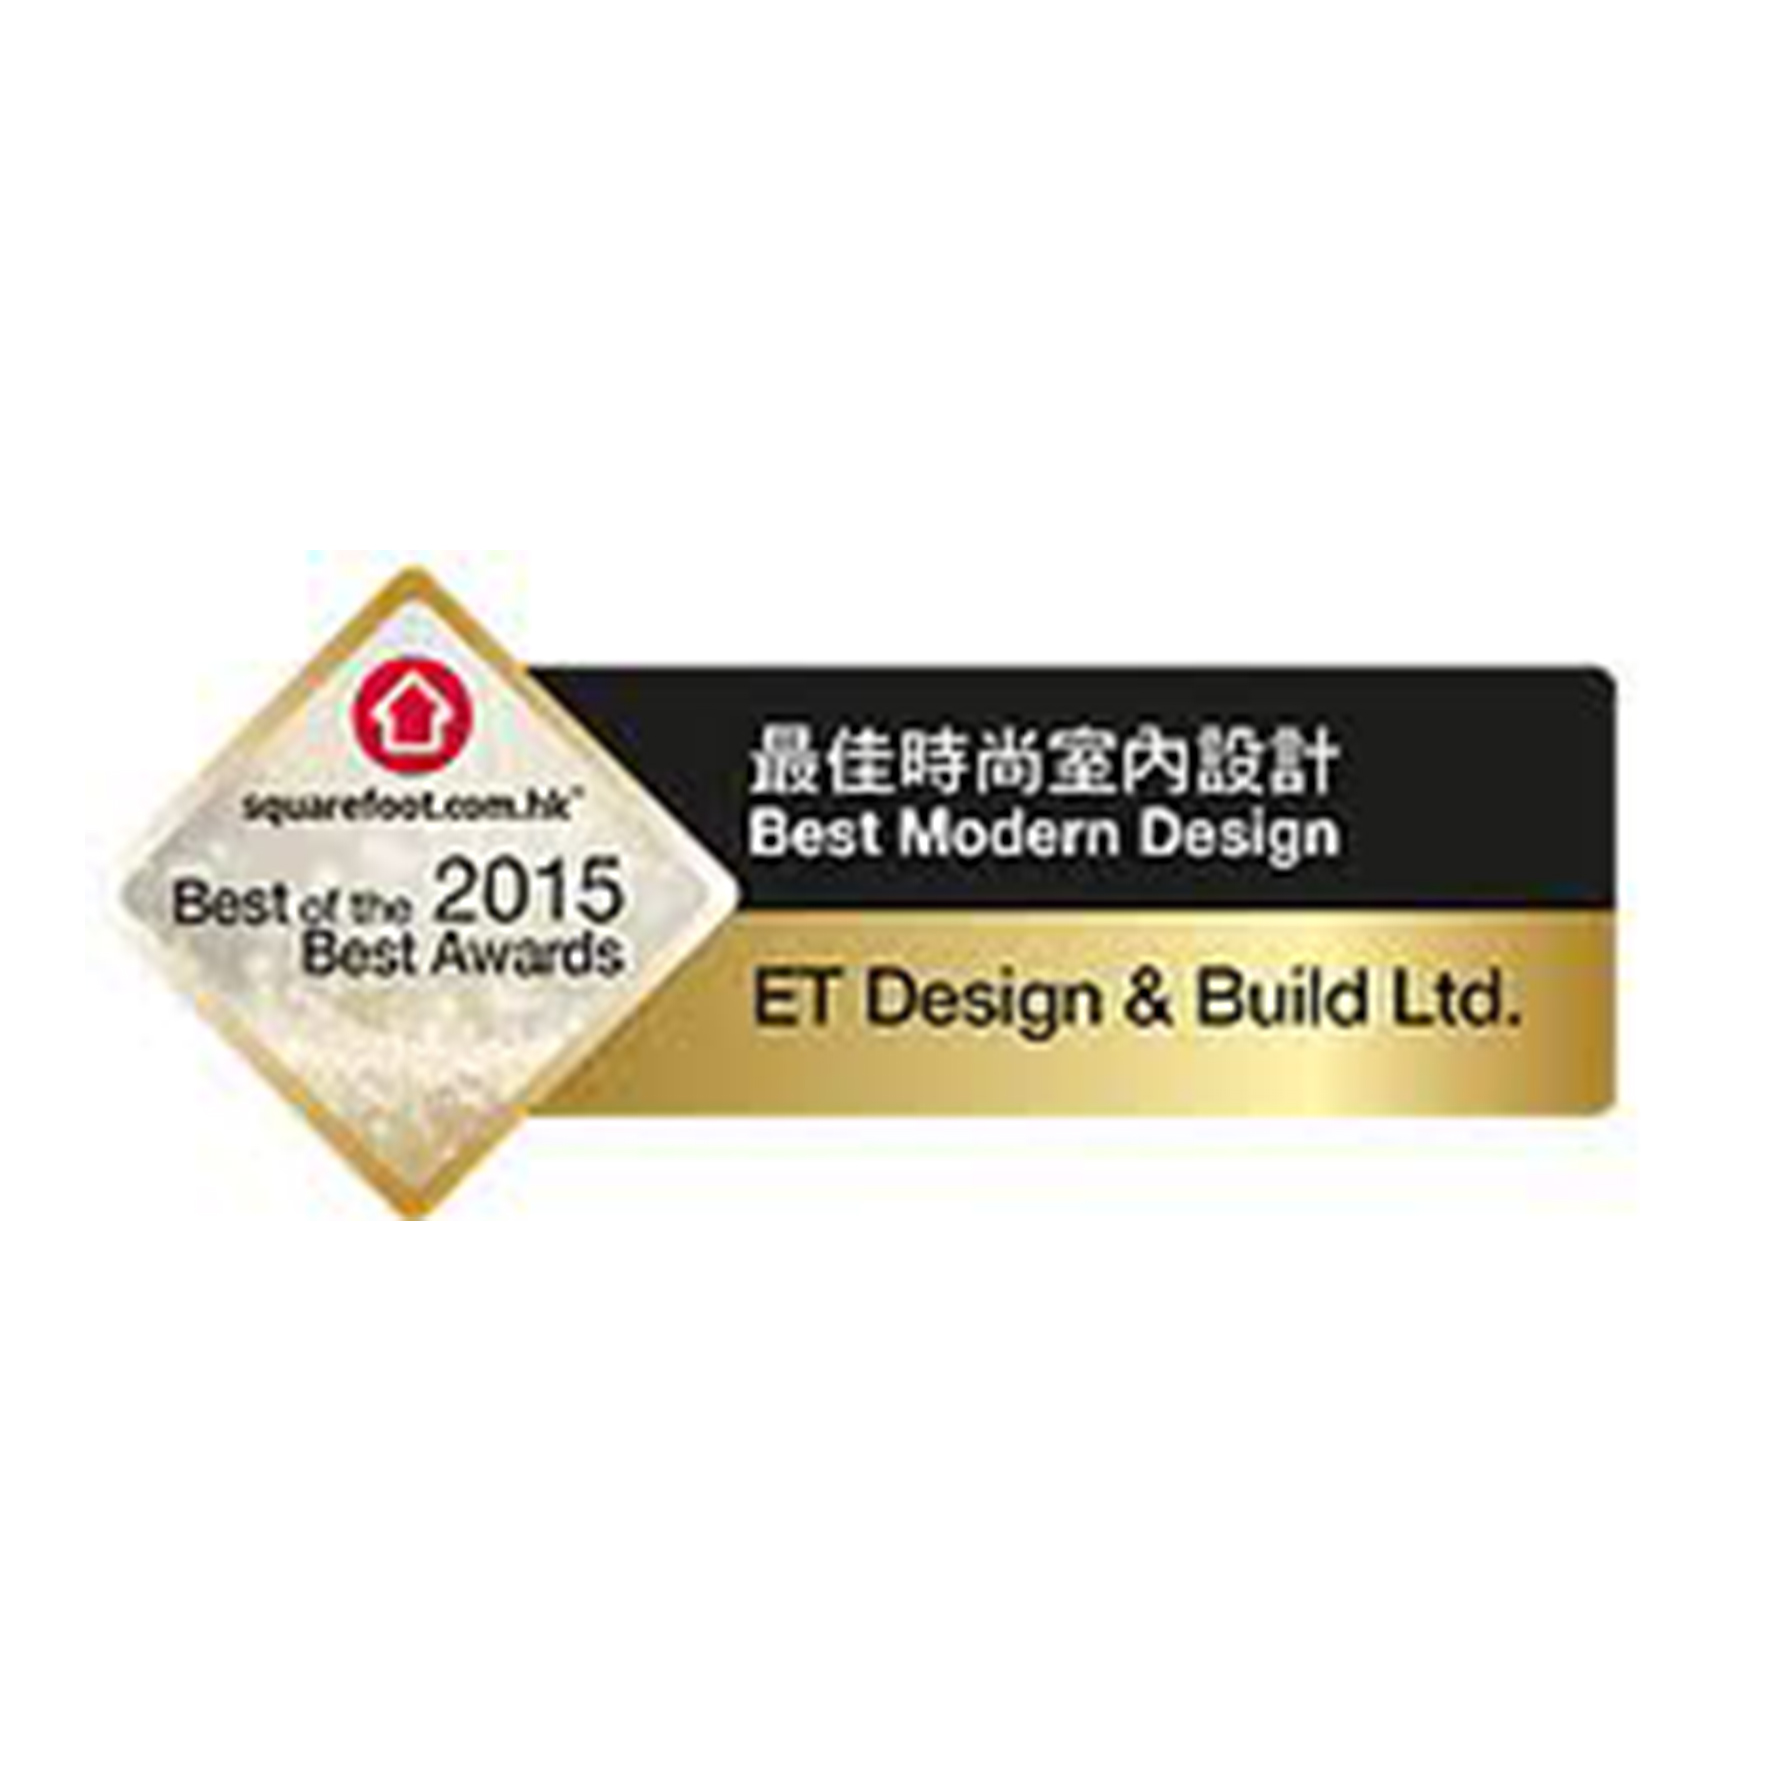 Best Modern Design Awards, Squarefoot Best of the Best Awards 2015